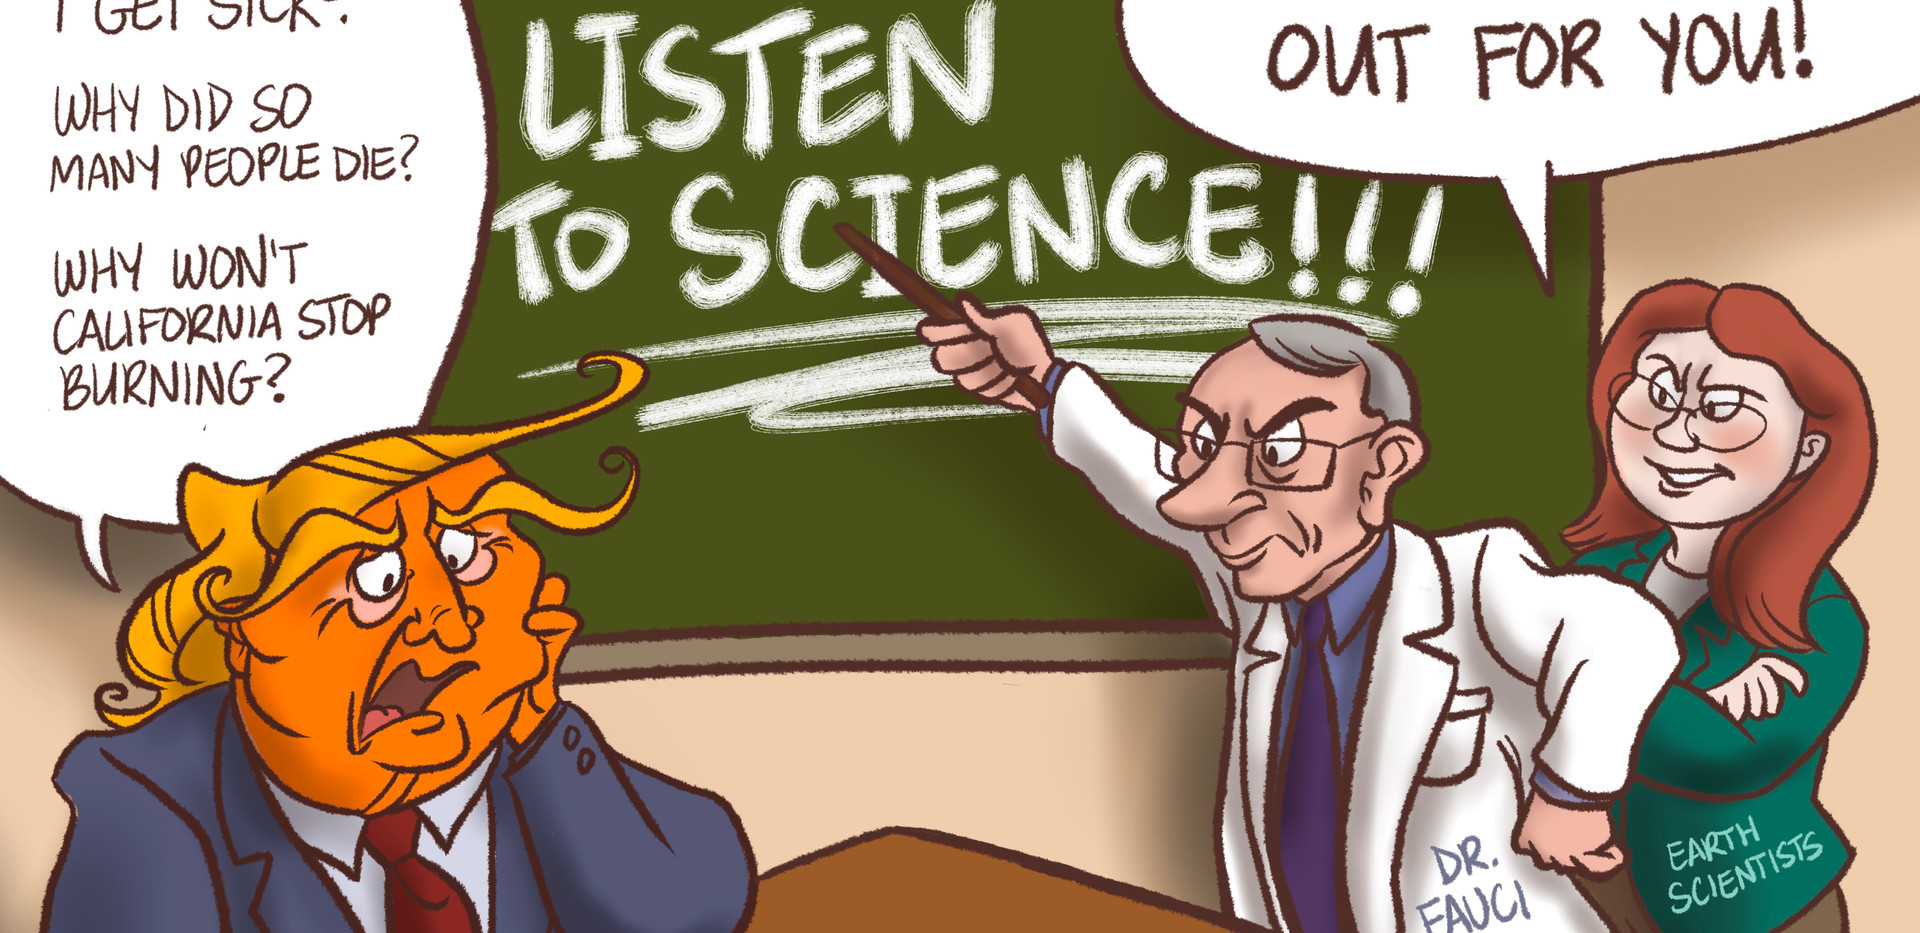 Listen to Science